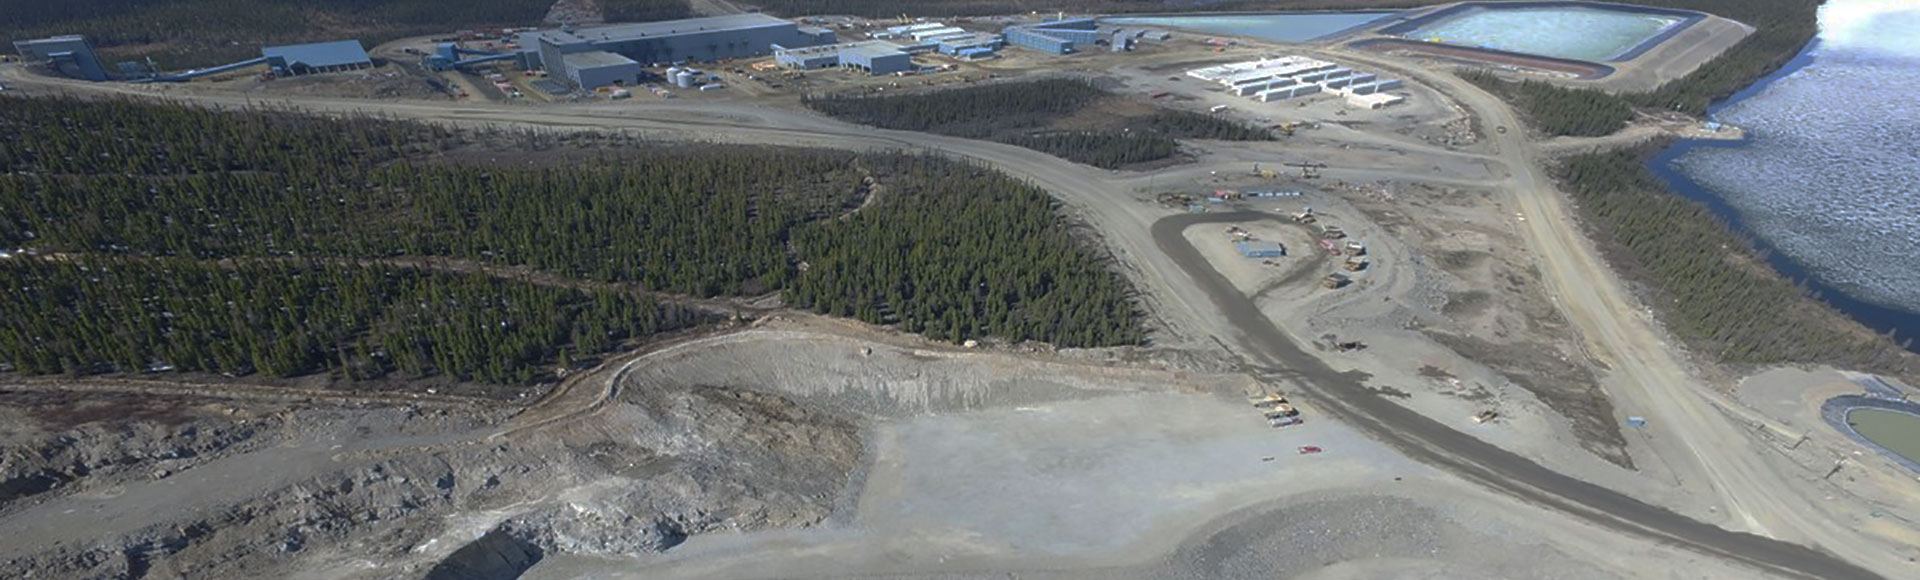 Voisey's Bay Mine Site, courtesy of Vale Canada Limited.